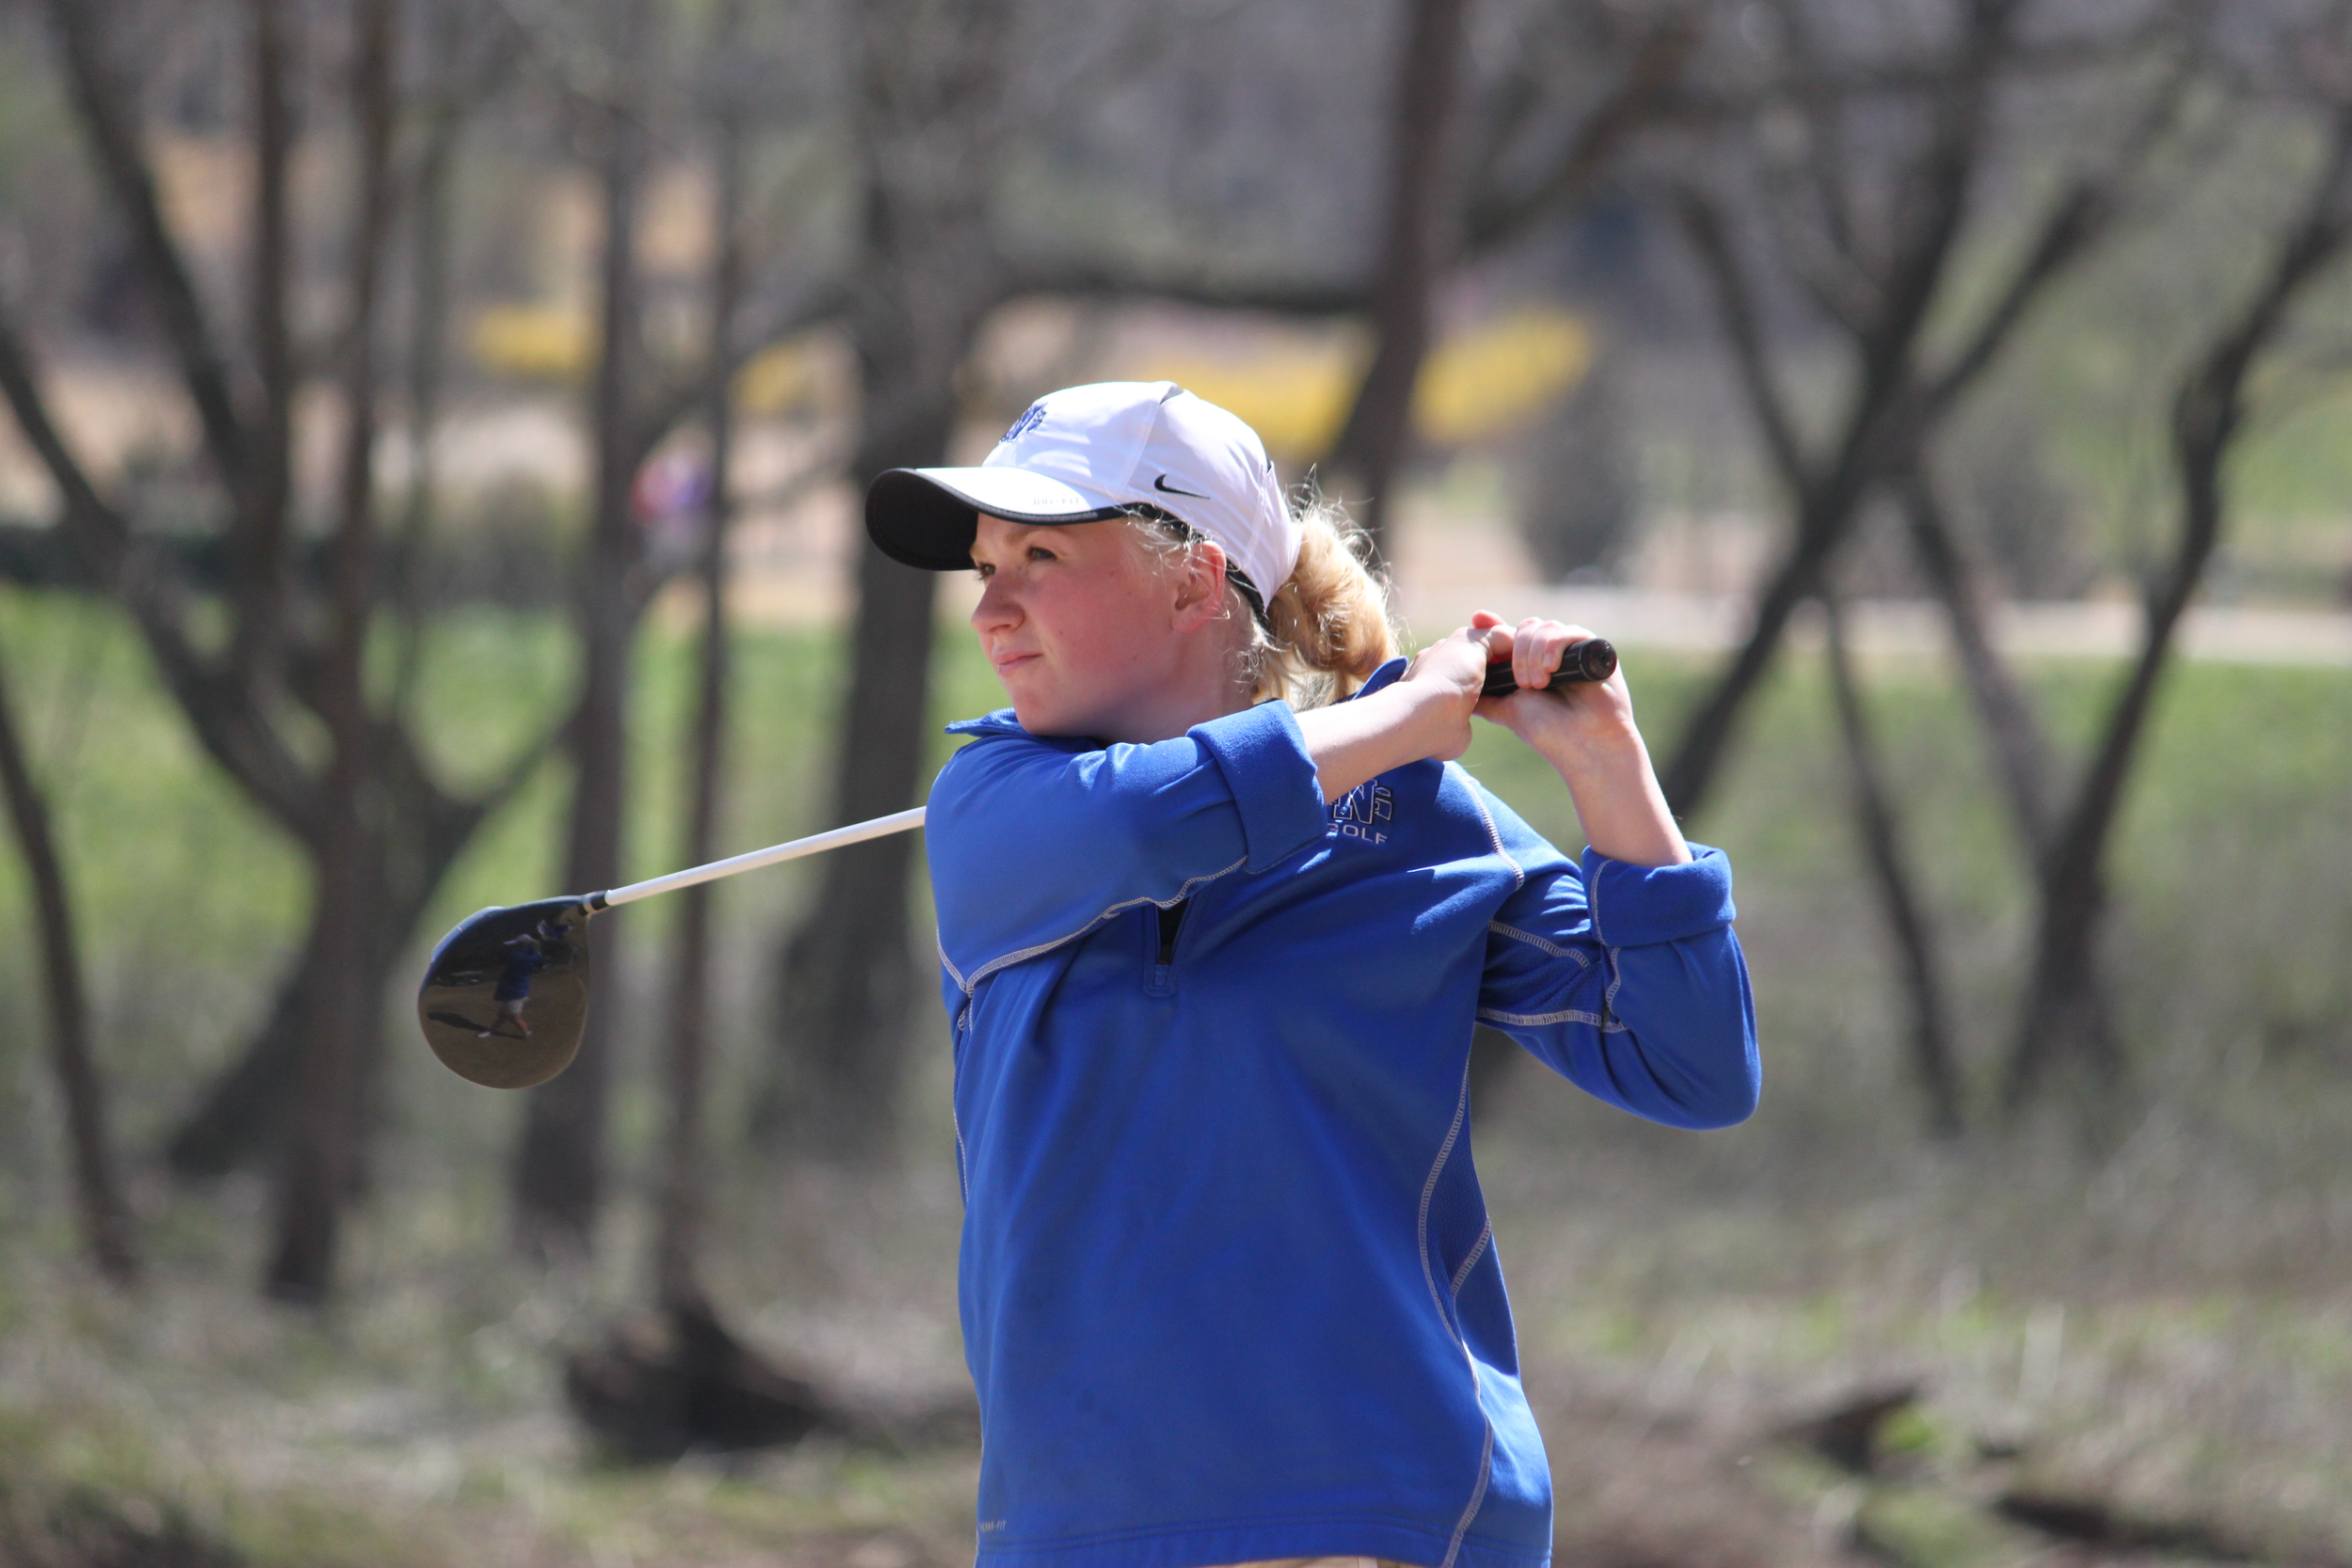 LeeAnn Noble plays a game of golf. After passing away friends and family created a scholarship in her name to support student-athletes.